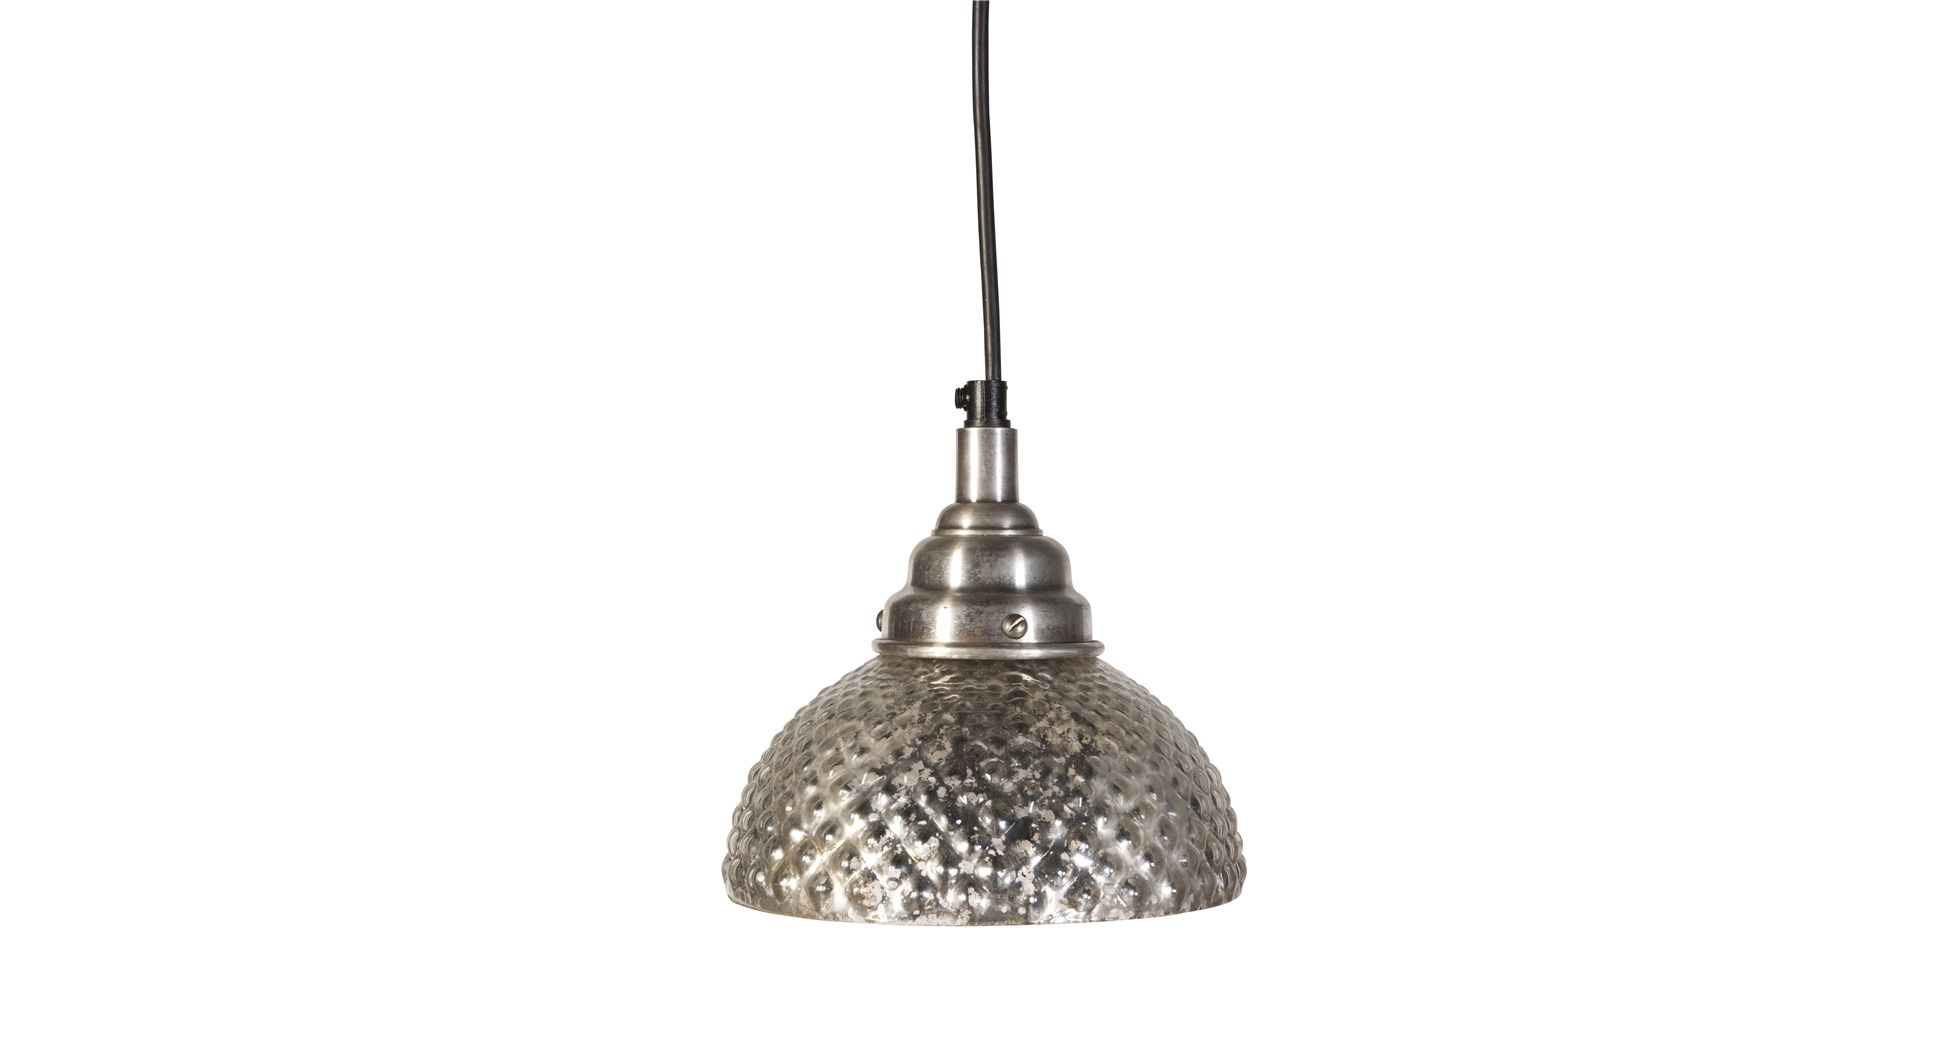 Mercury Glass Pendant Light Fixture Gorgeous Lightingmercuryglasspendantlightsatanthropologiechicour Inspiration Design